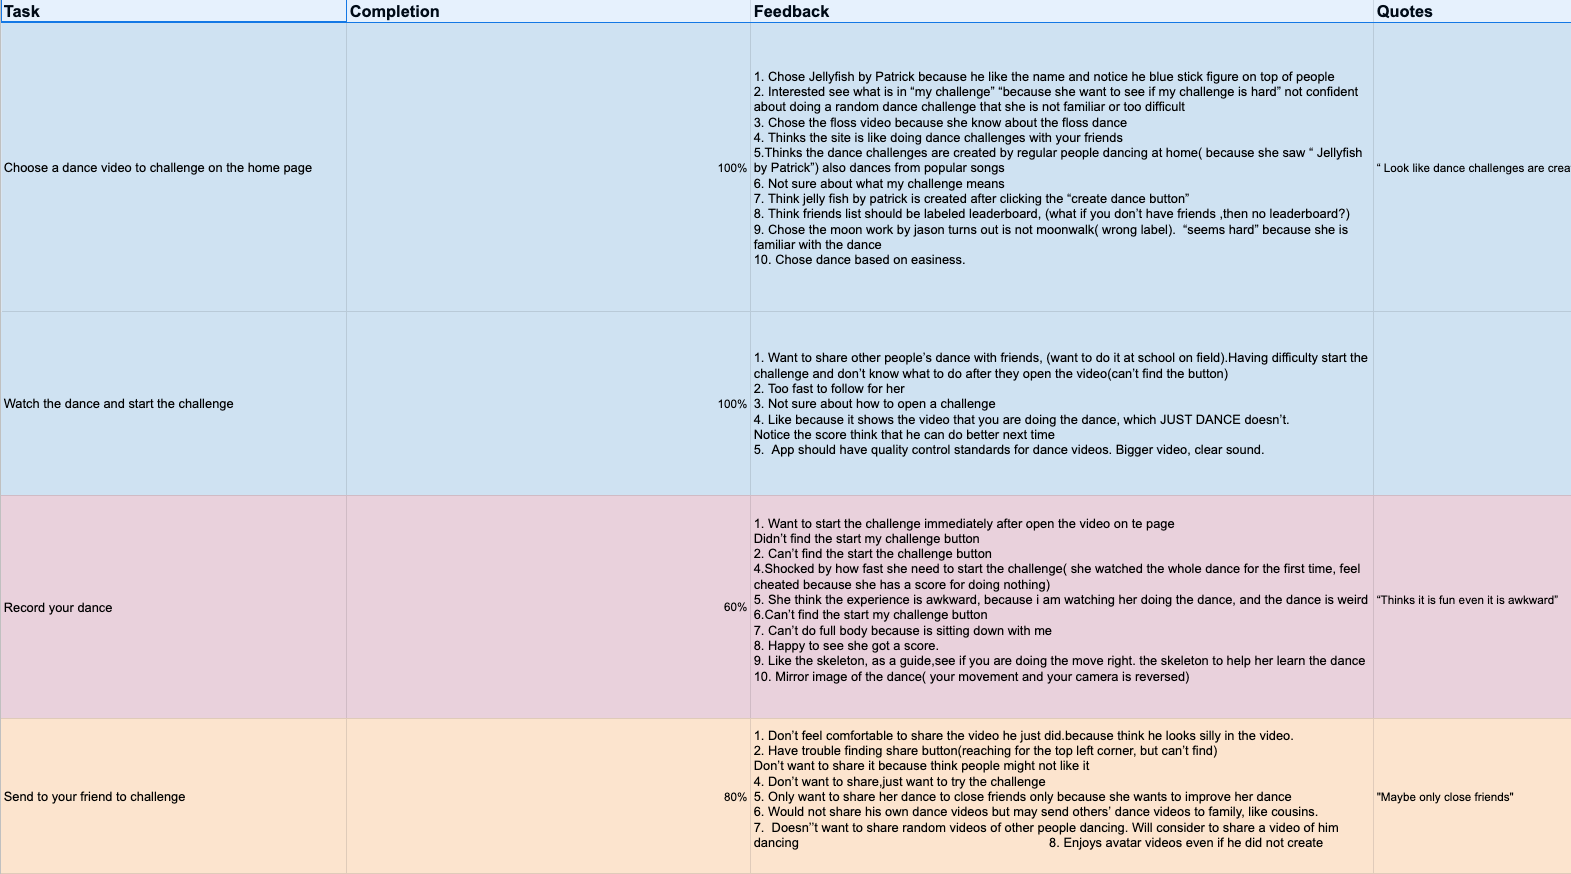 We color coded each task based on how successful users were at various tasks